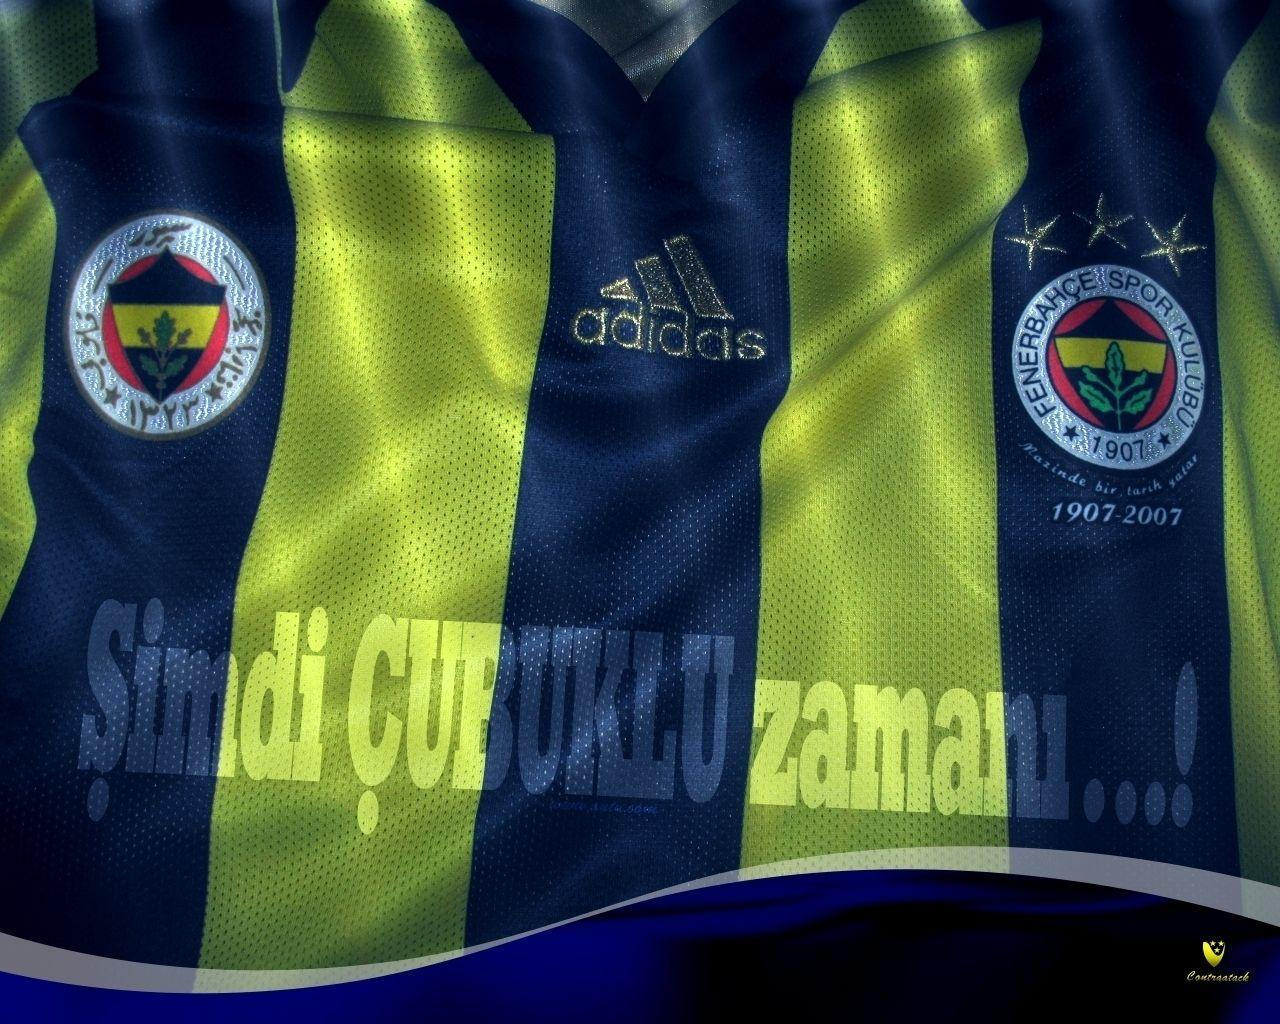 Fenerbahçe SK images Cubuklu256 HD wallpaper and background photos ...